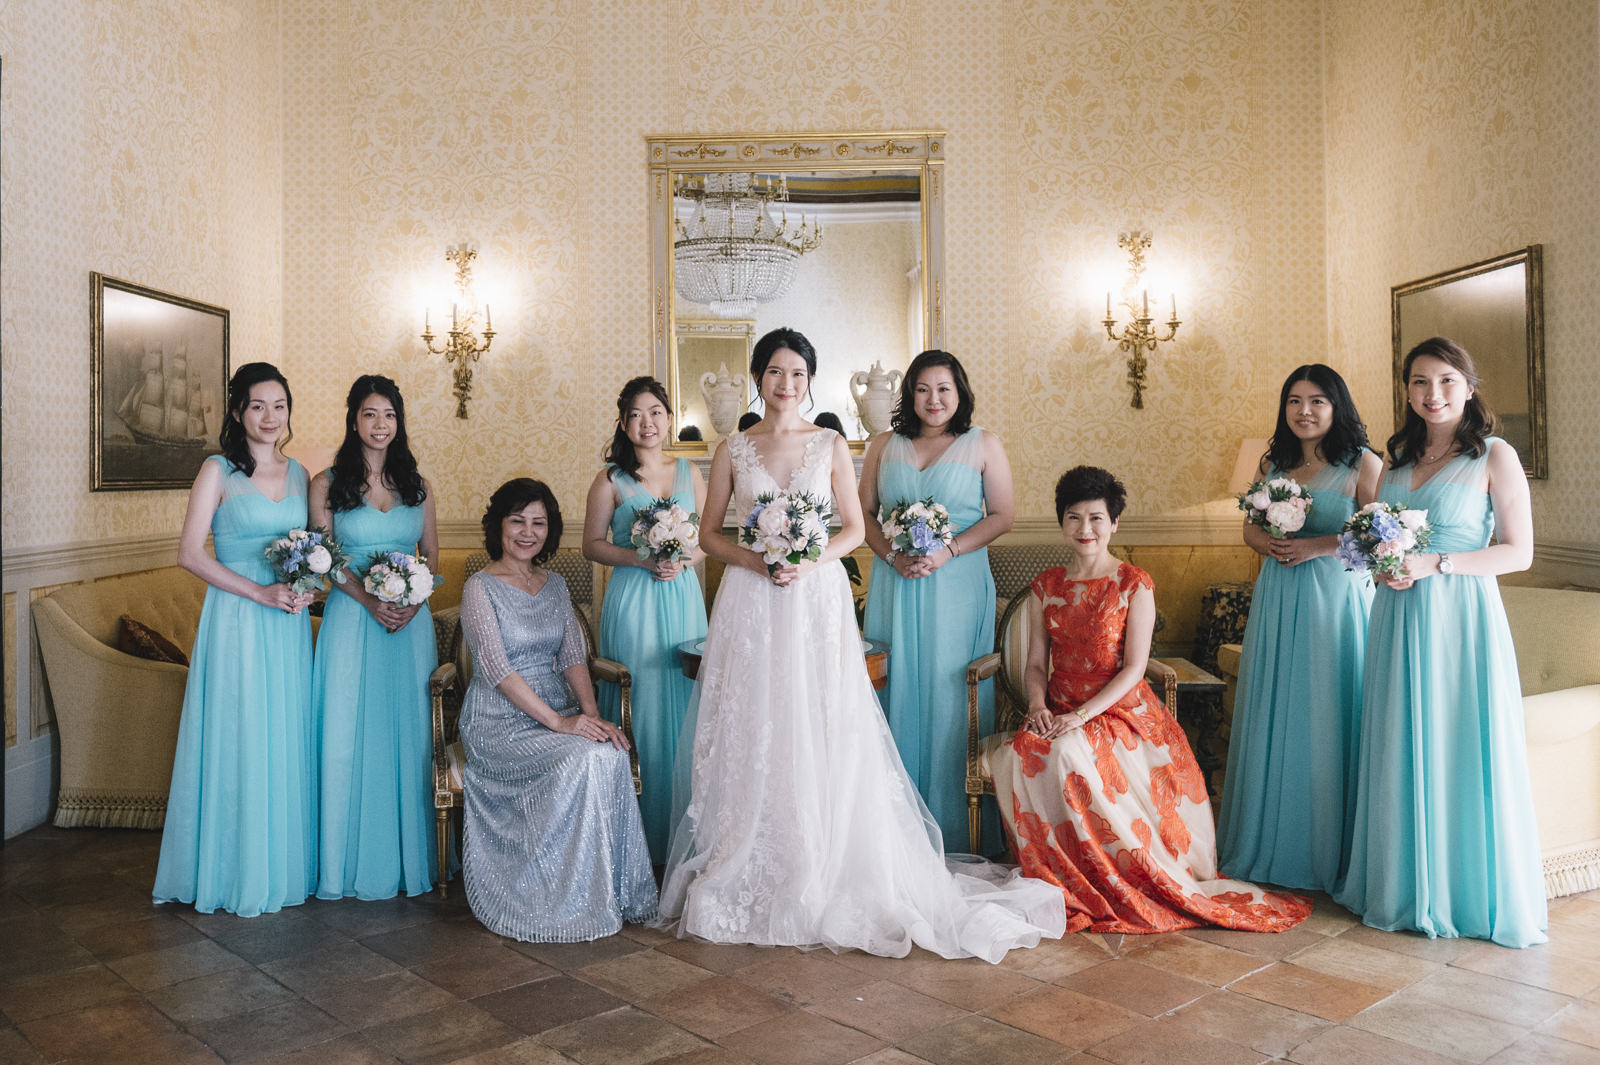 the bride surrounded by bridesmaids